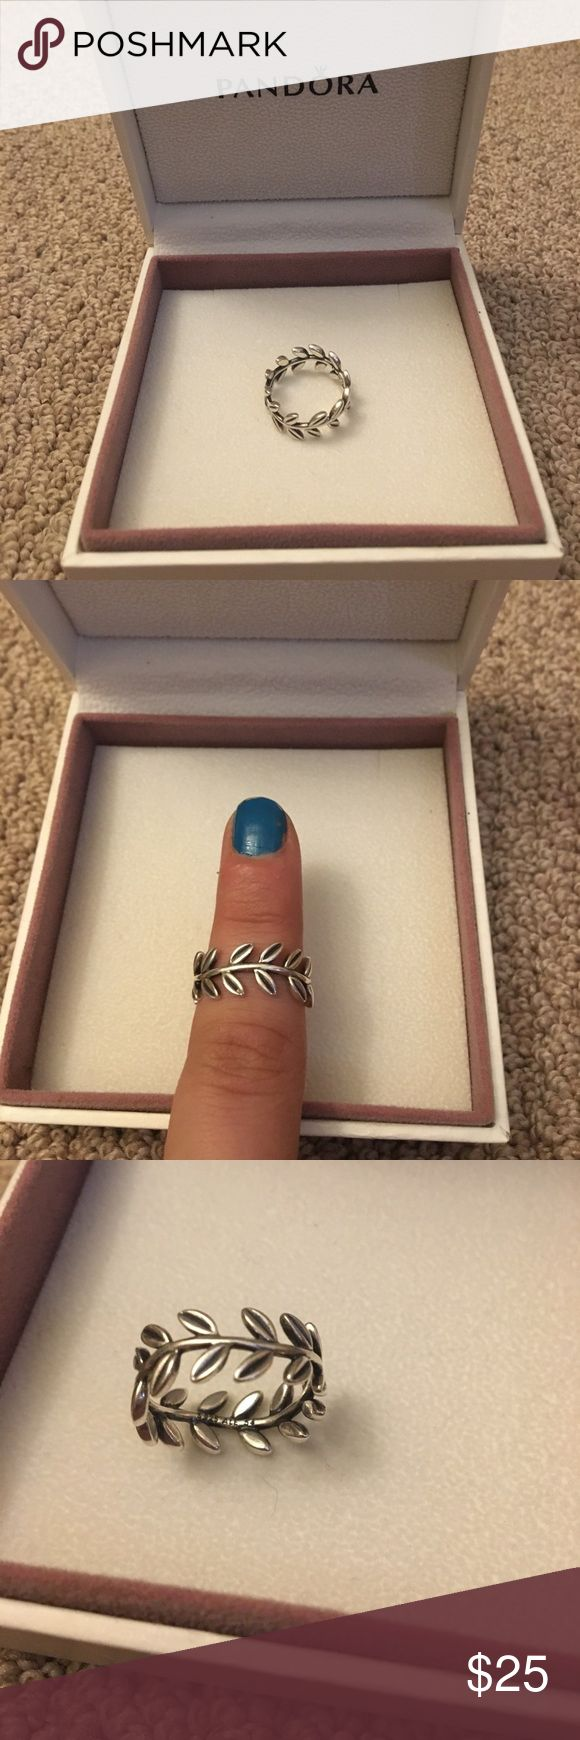 Pandora leaves and vine ring Silver pandora ring with leaves and vine in wavy detail. Verified 925 detailing is shown. Pandora sizing is in EU so fits a US size 7. Worn less than 10 times and in very good condition! Pandora Jewelry Rings